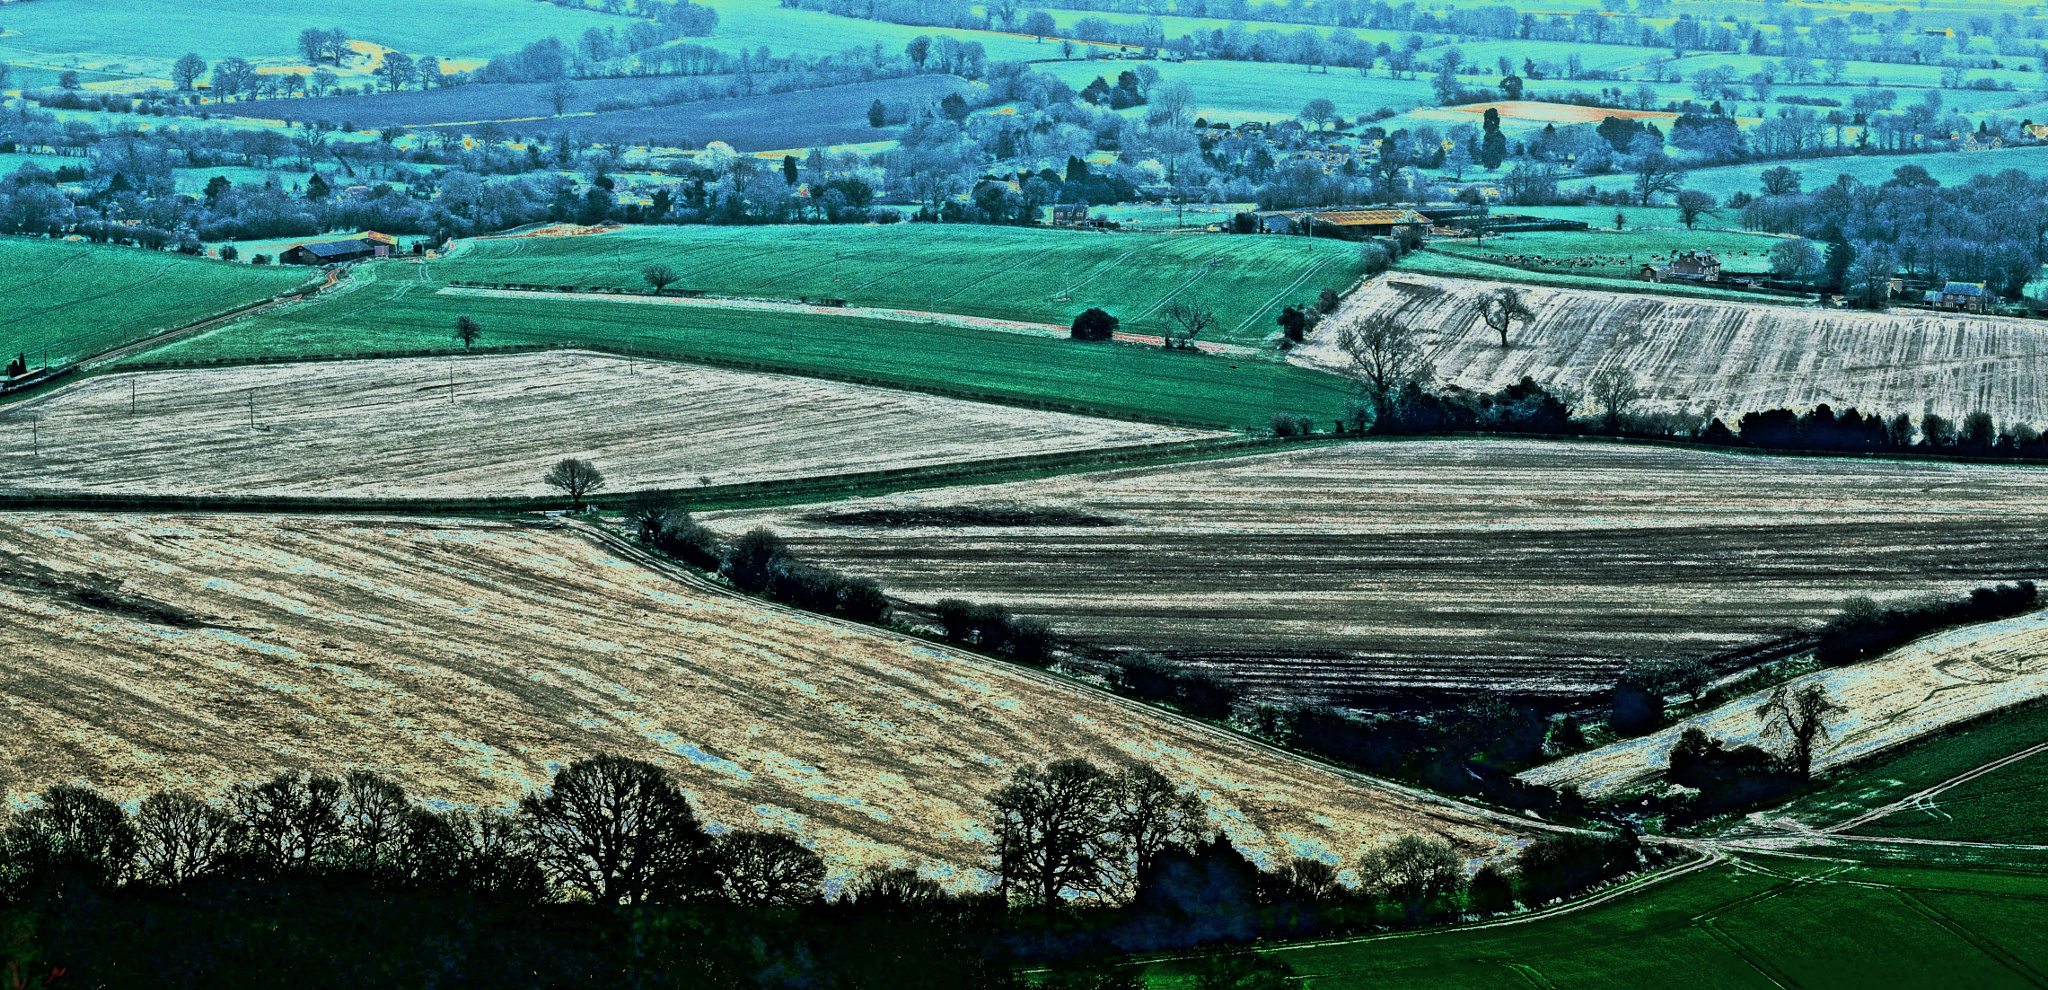 Shapes and Patterns - Sunny Hill, Wiltshire by Keith Patrak